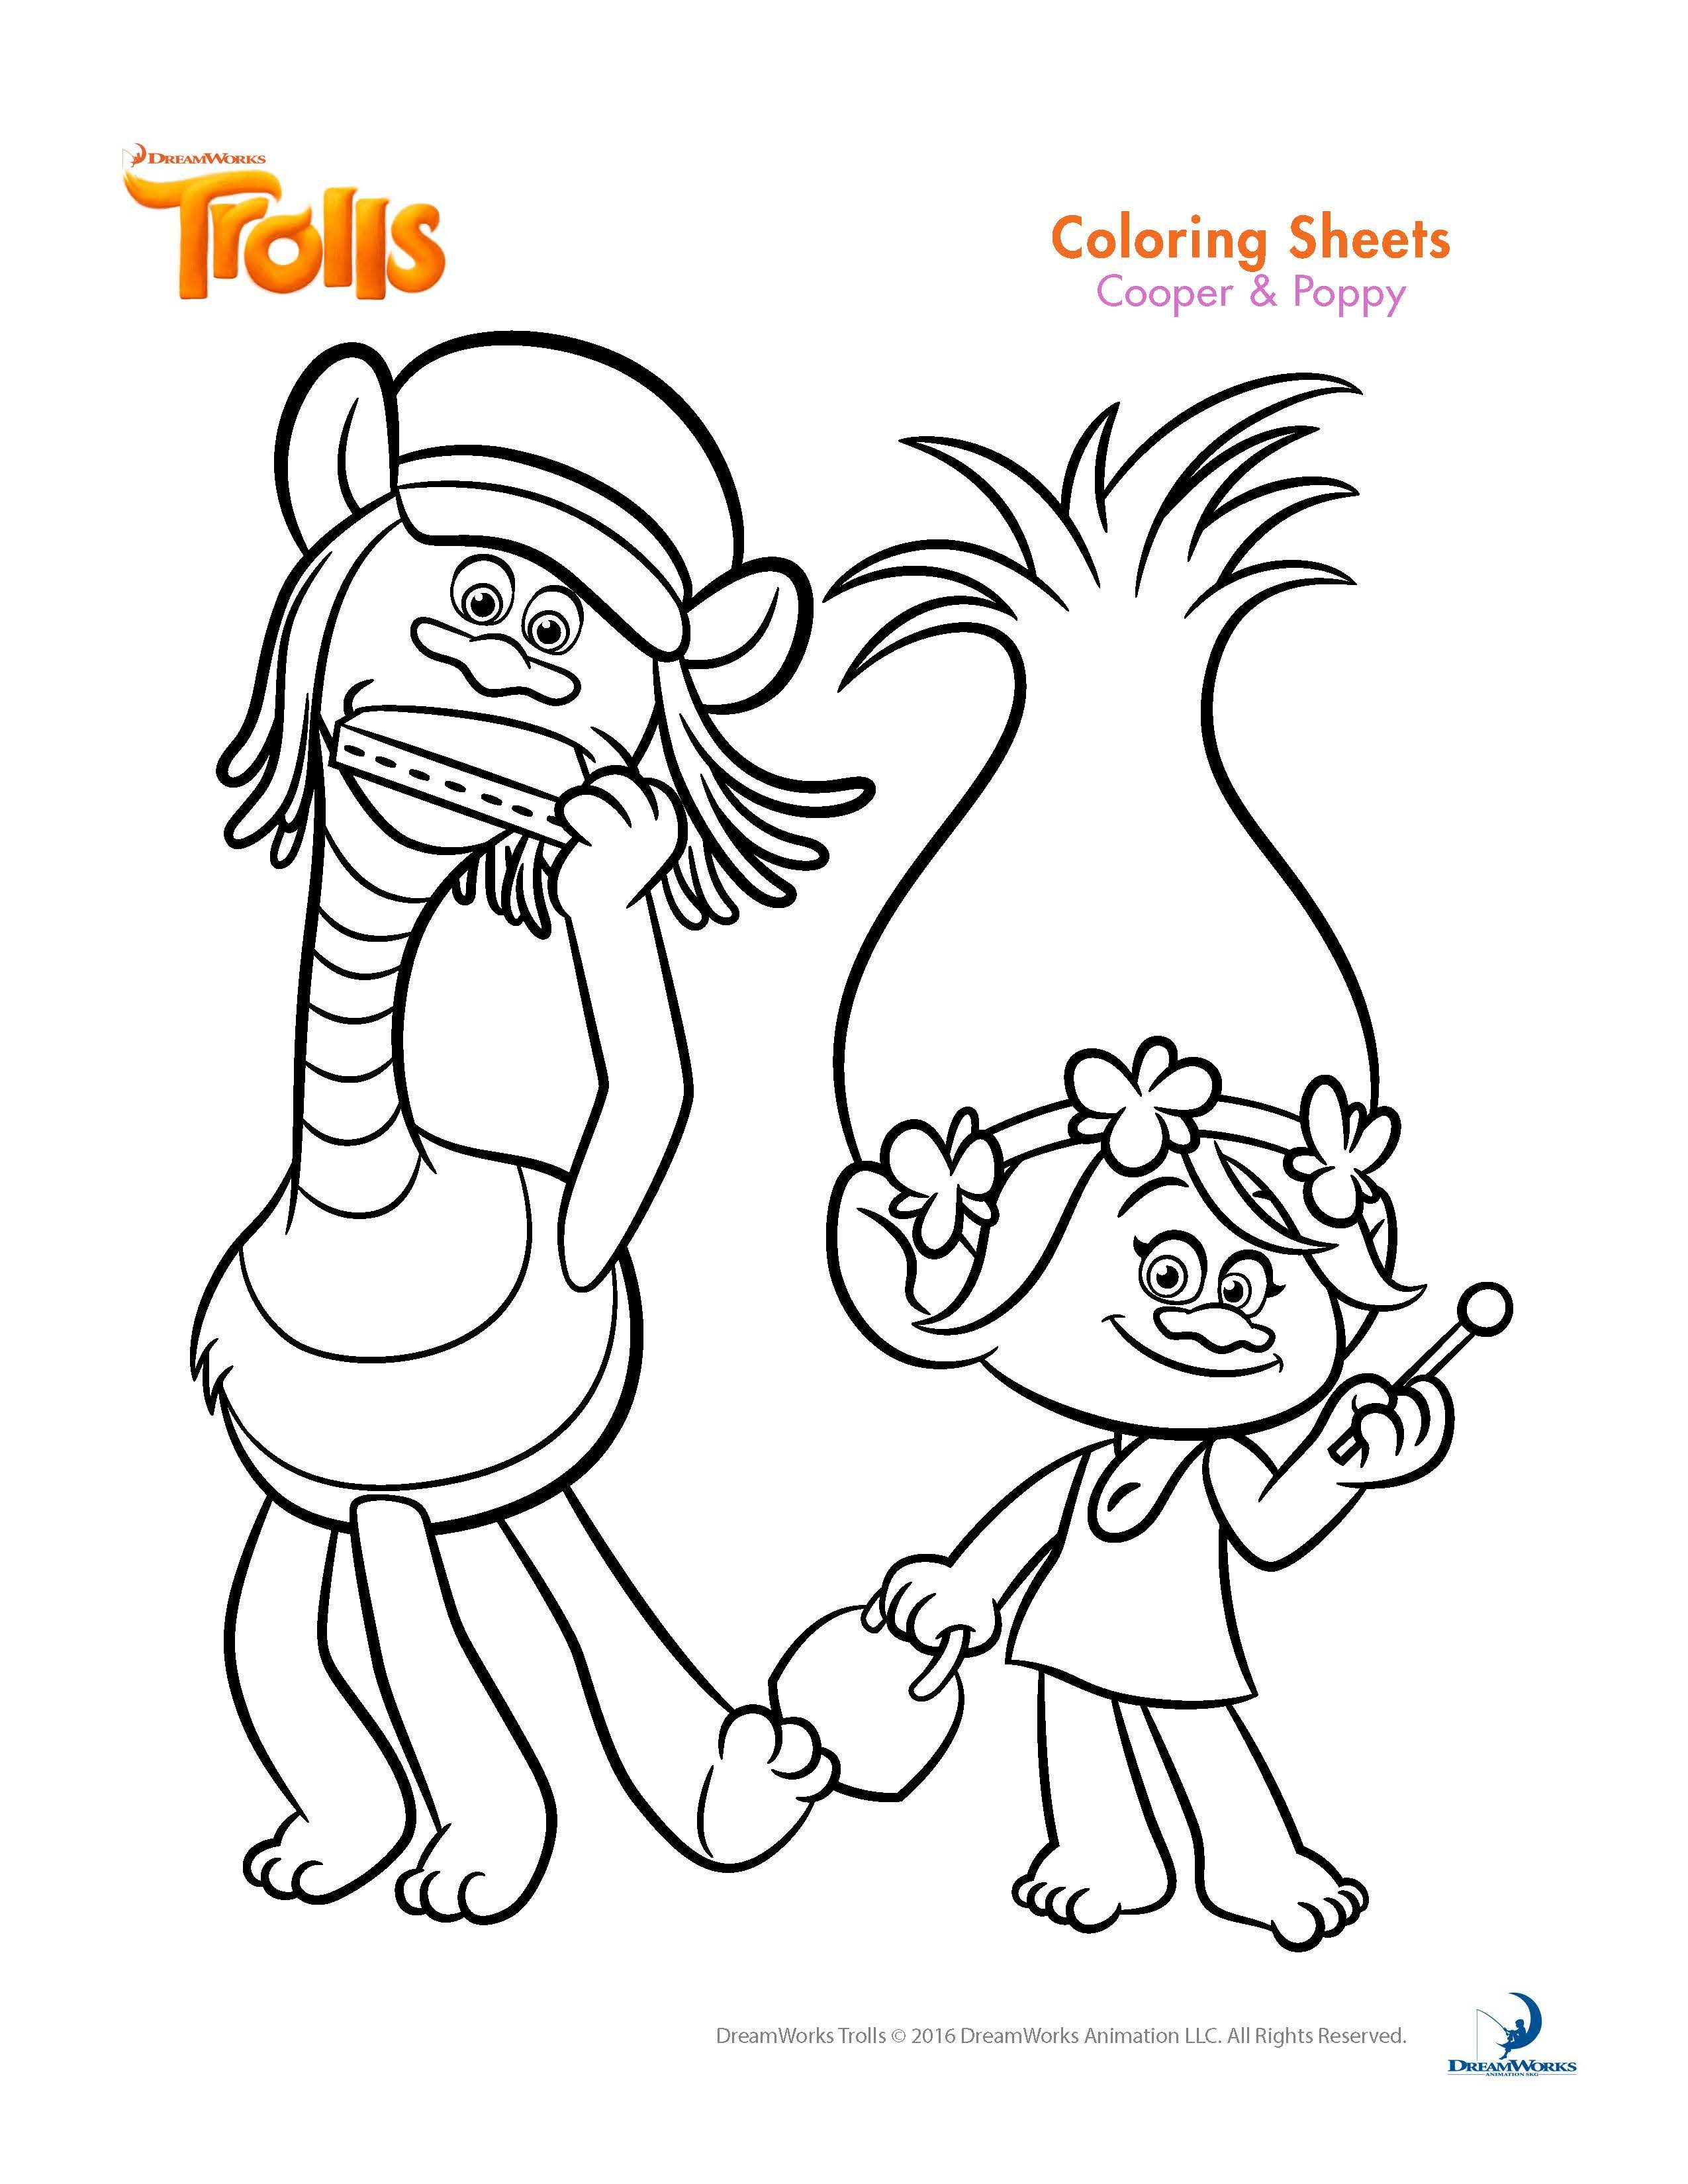 Trolls Coloring Pages And Printable Activity Sheets | Trolls B-Day - Free Printable Troll Coloring Pages